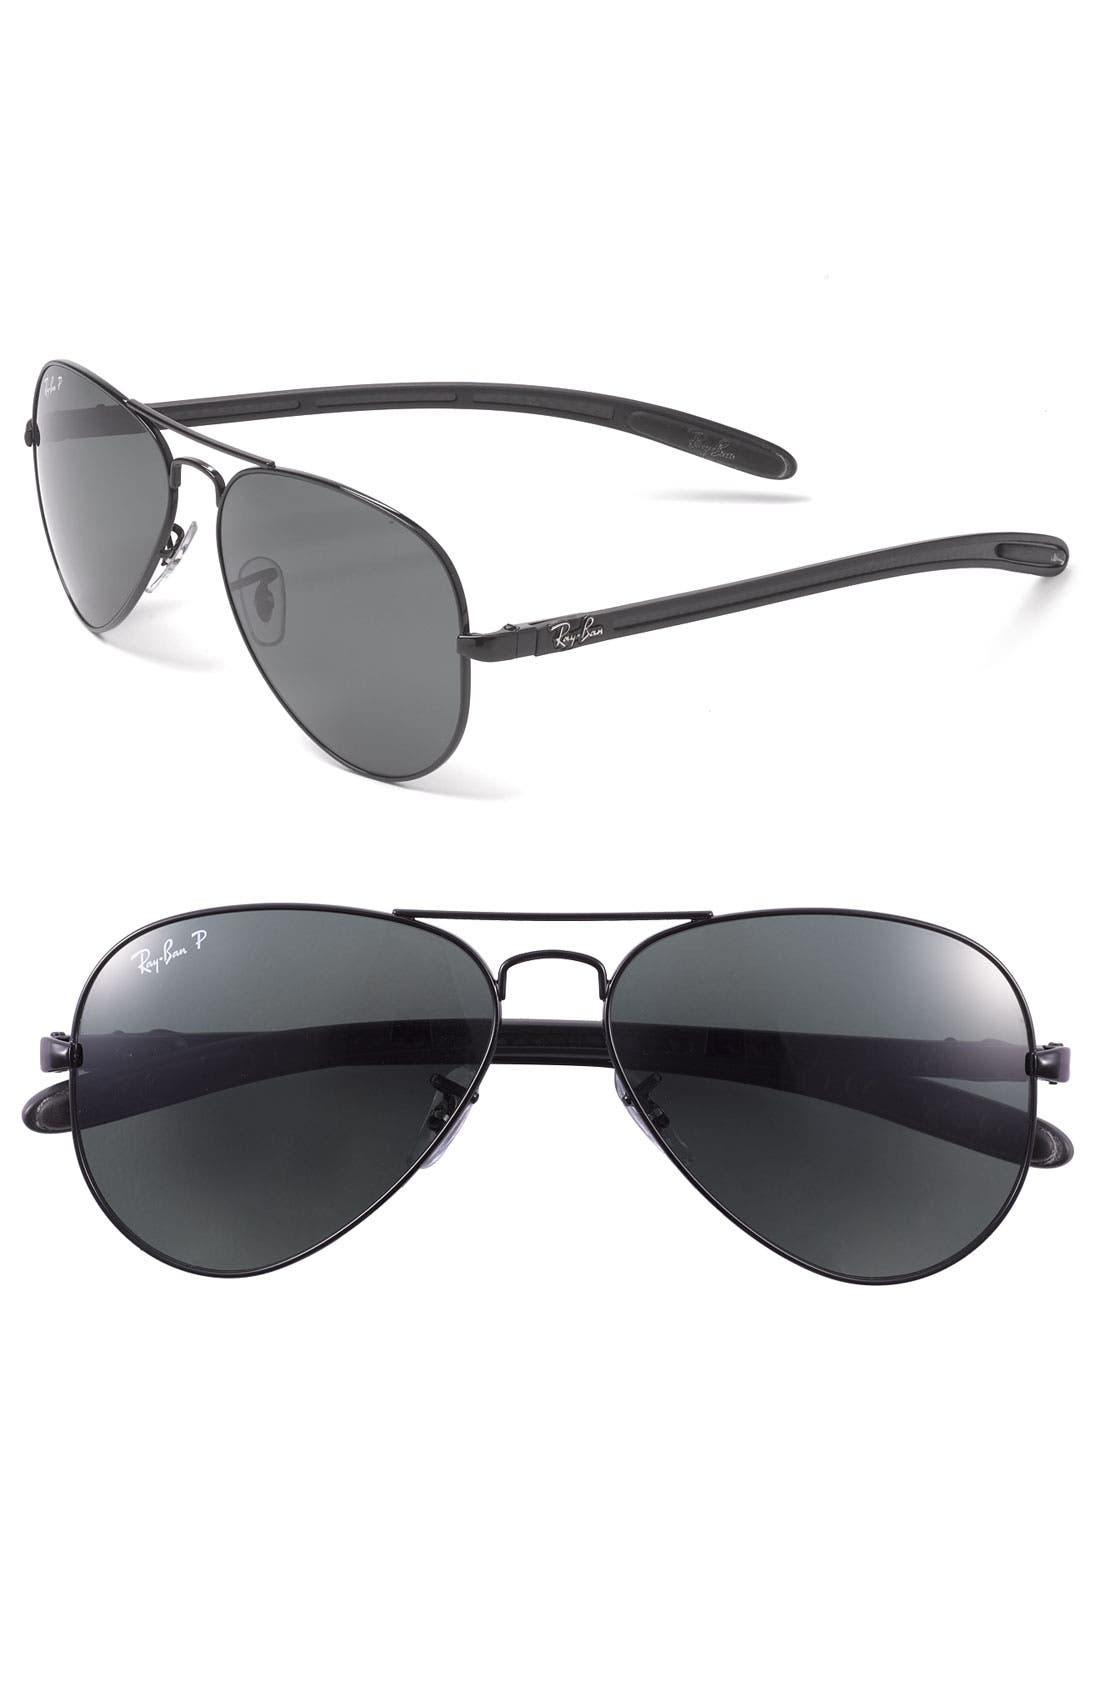 Alternate Image 1 Selected - Ray-Ban 'Tech' Polarized 58mm Aviator Sunglasses